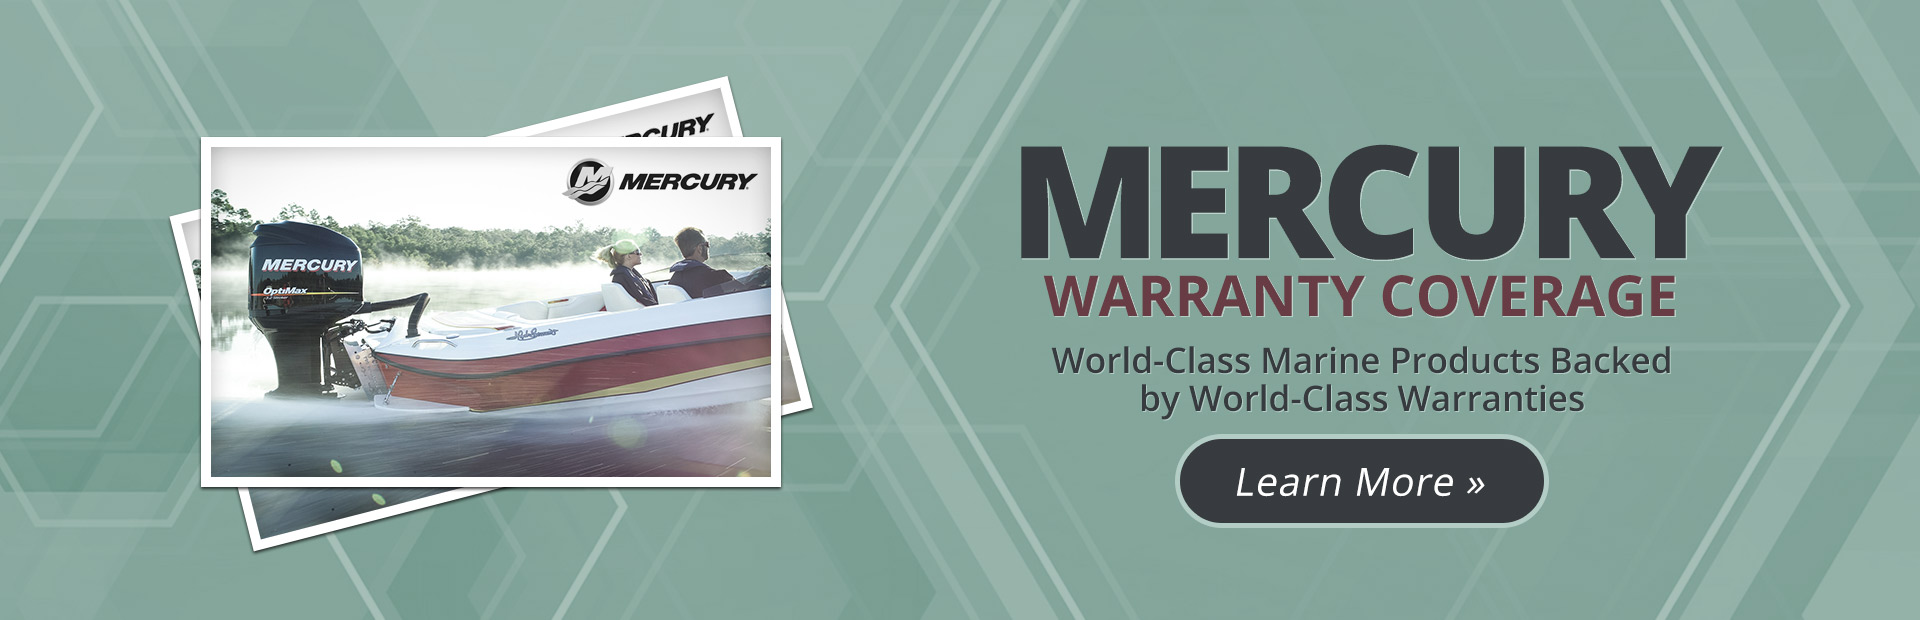 Mercury Warranty Coverage: Click here to learn more.